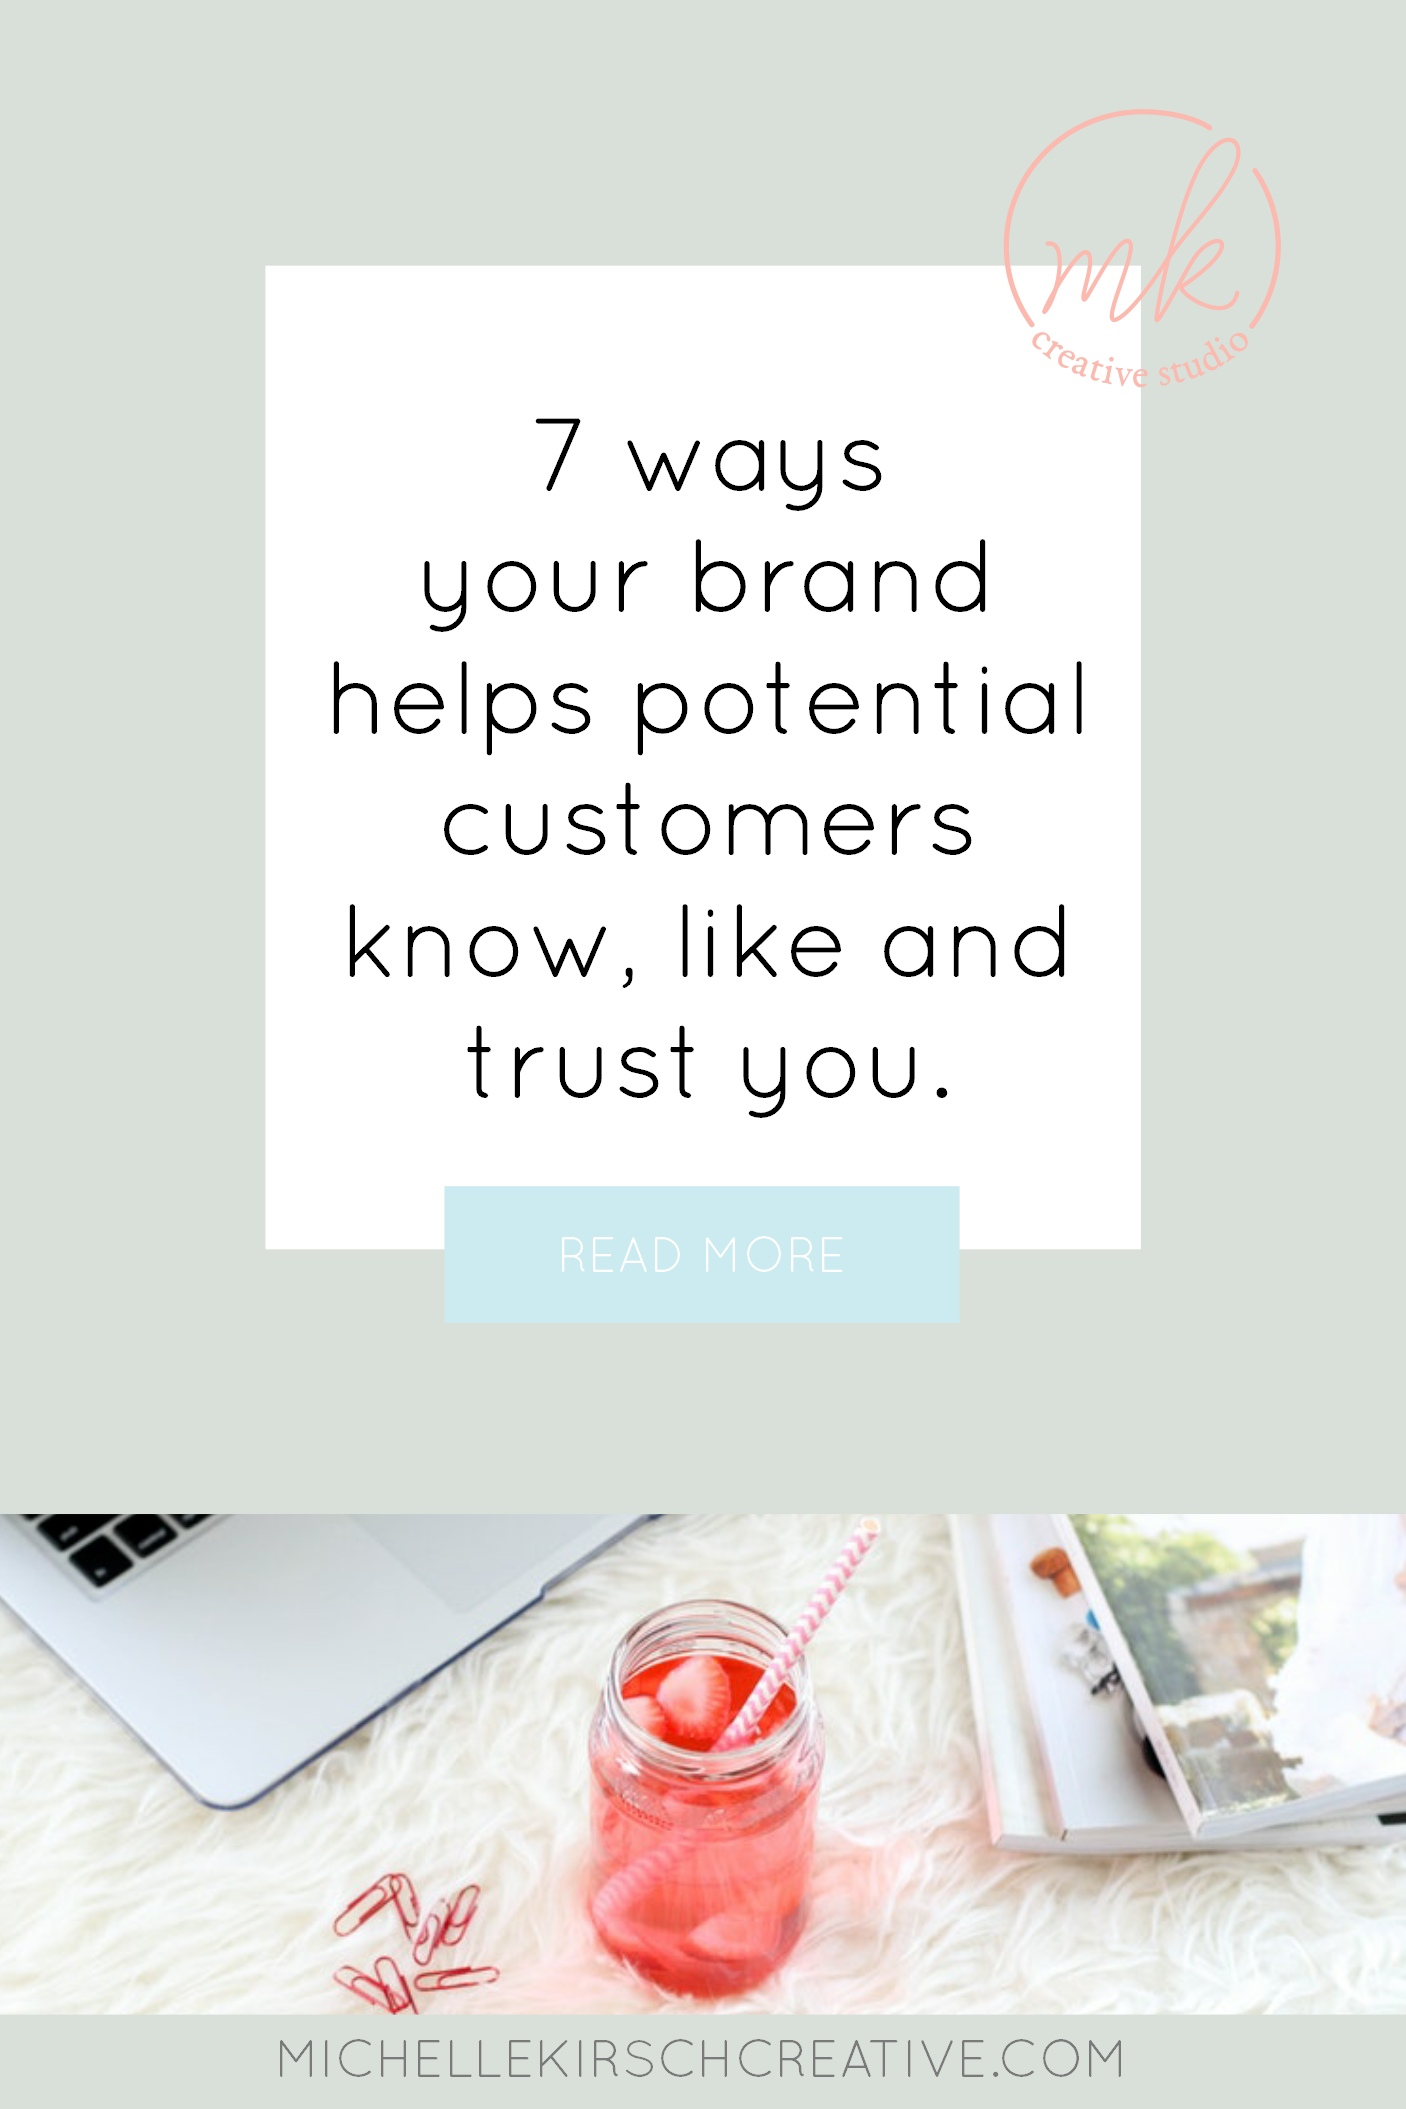 7 ways your brand helps potential customers know, like and trust you